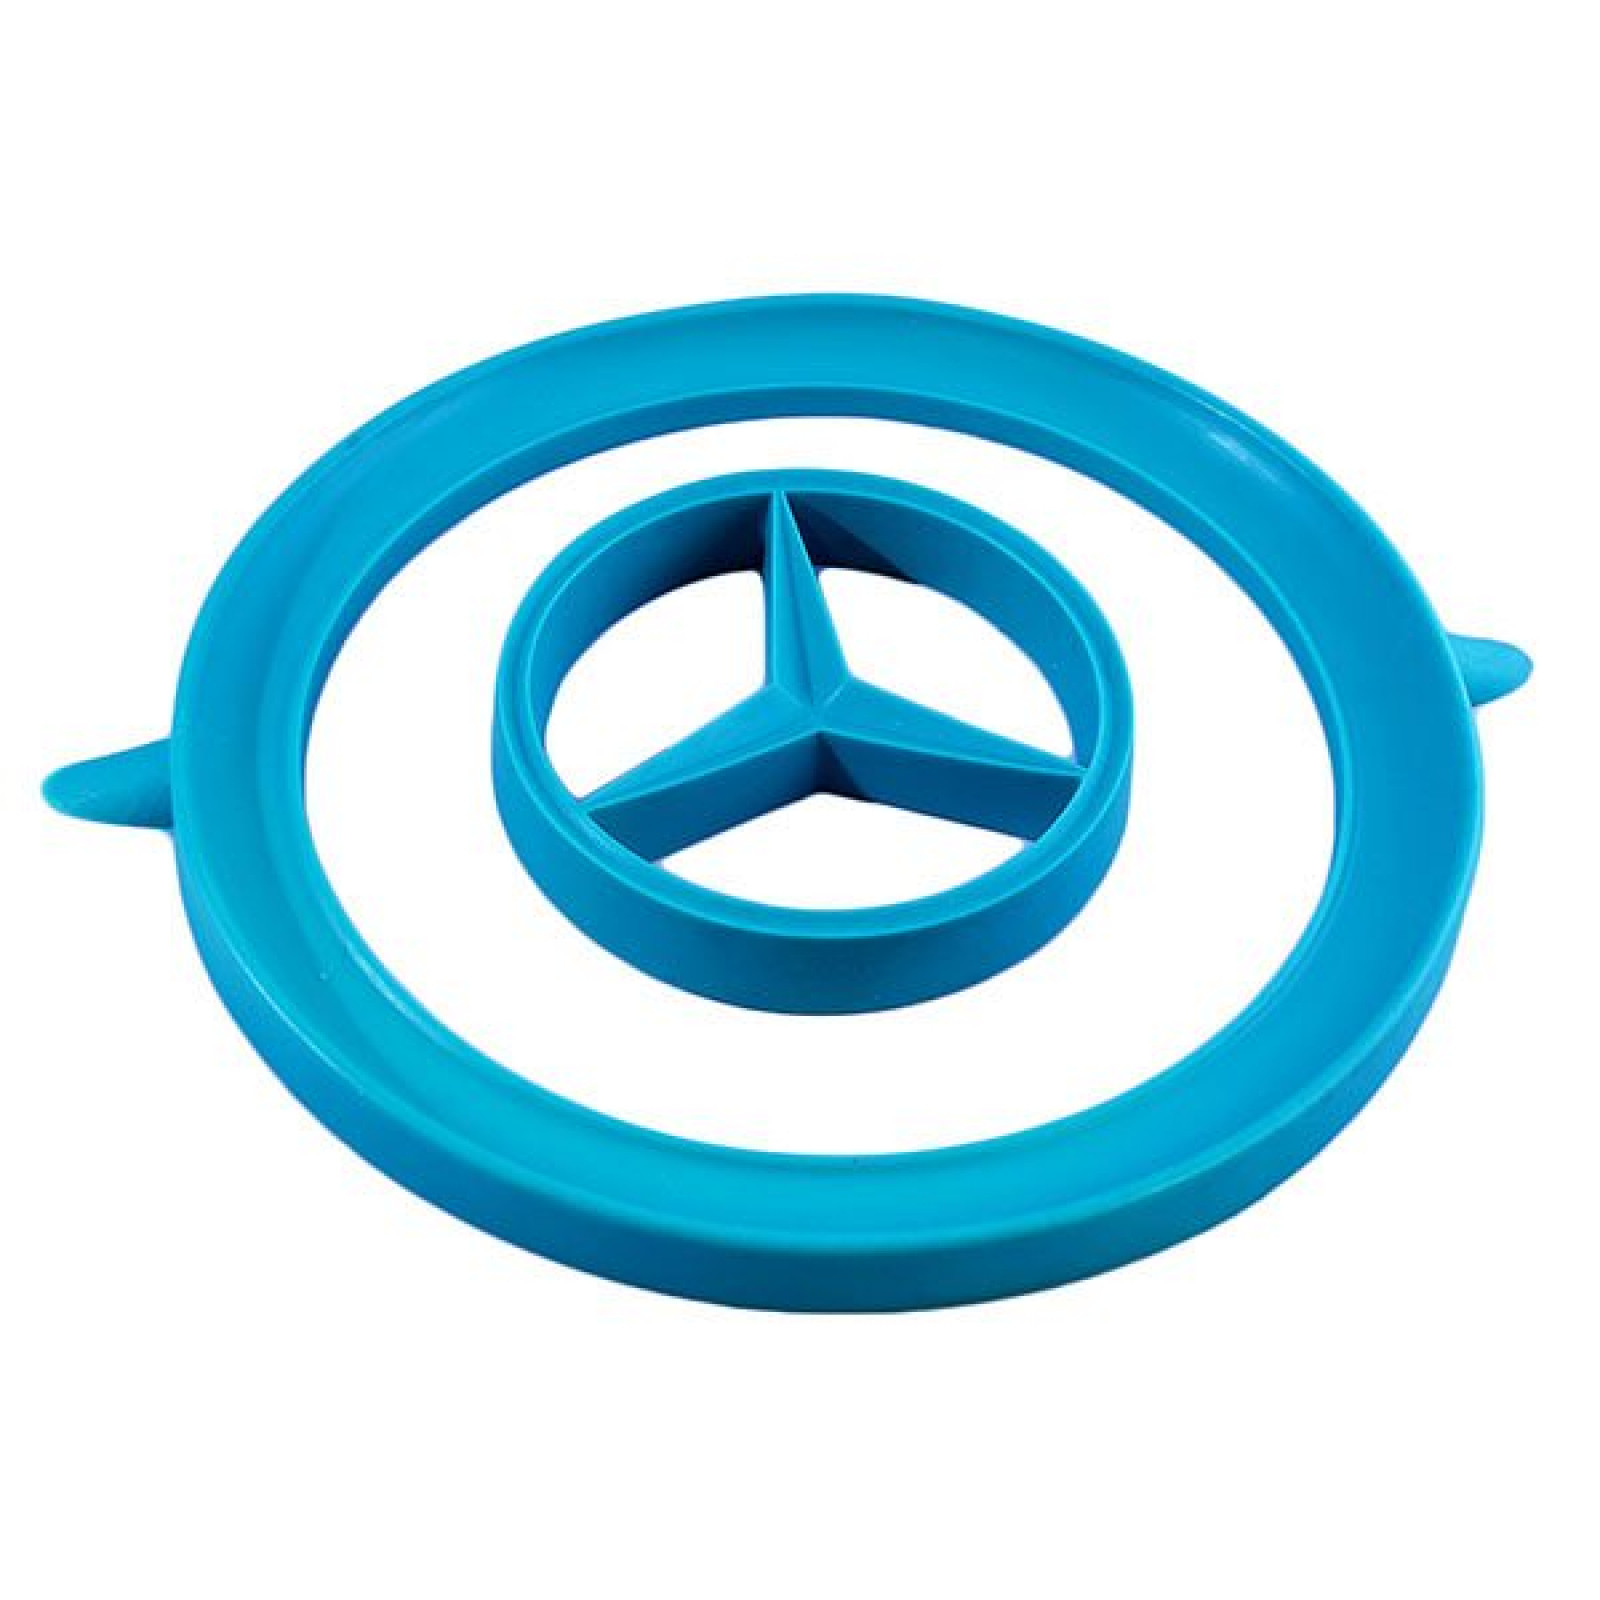 Mercedes-Benz Hub Cap Silicone Star Template | The SL Shop